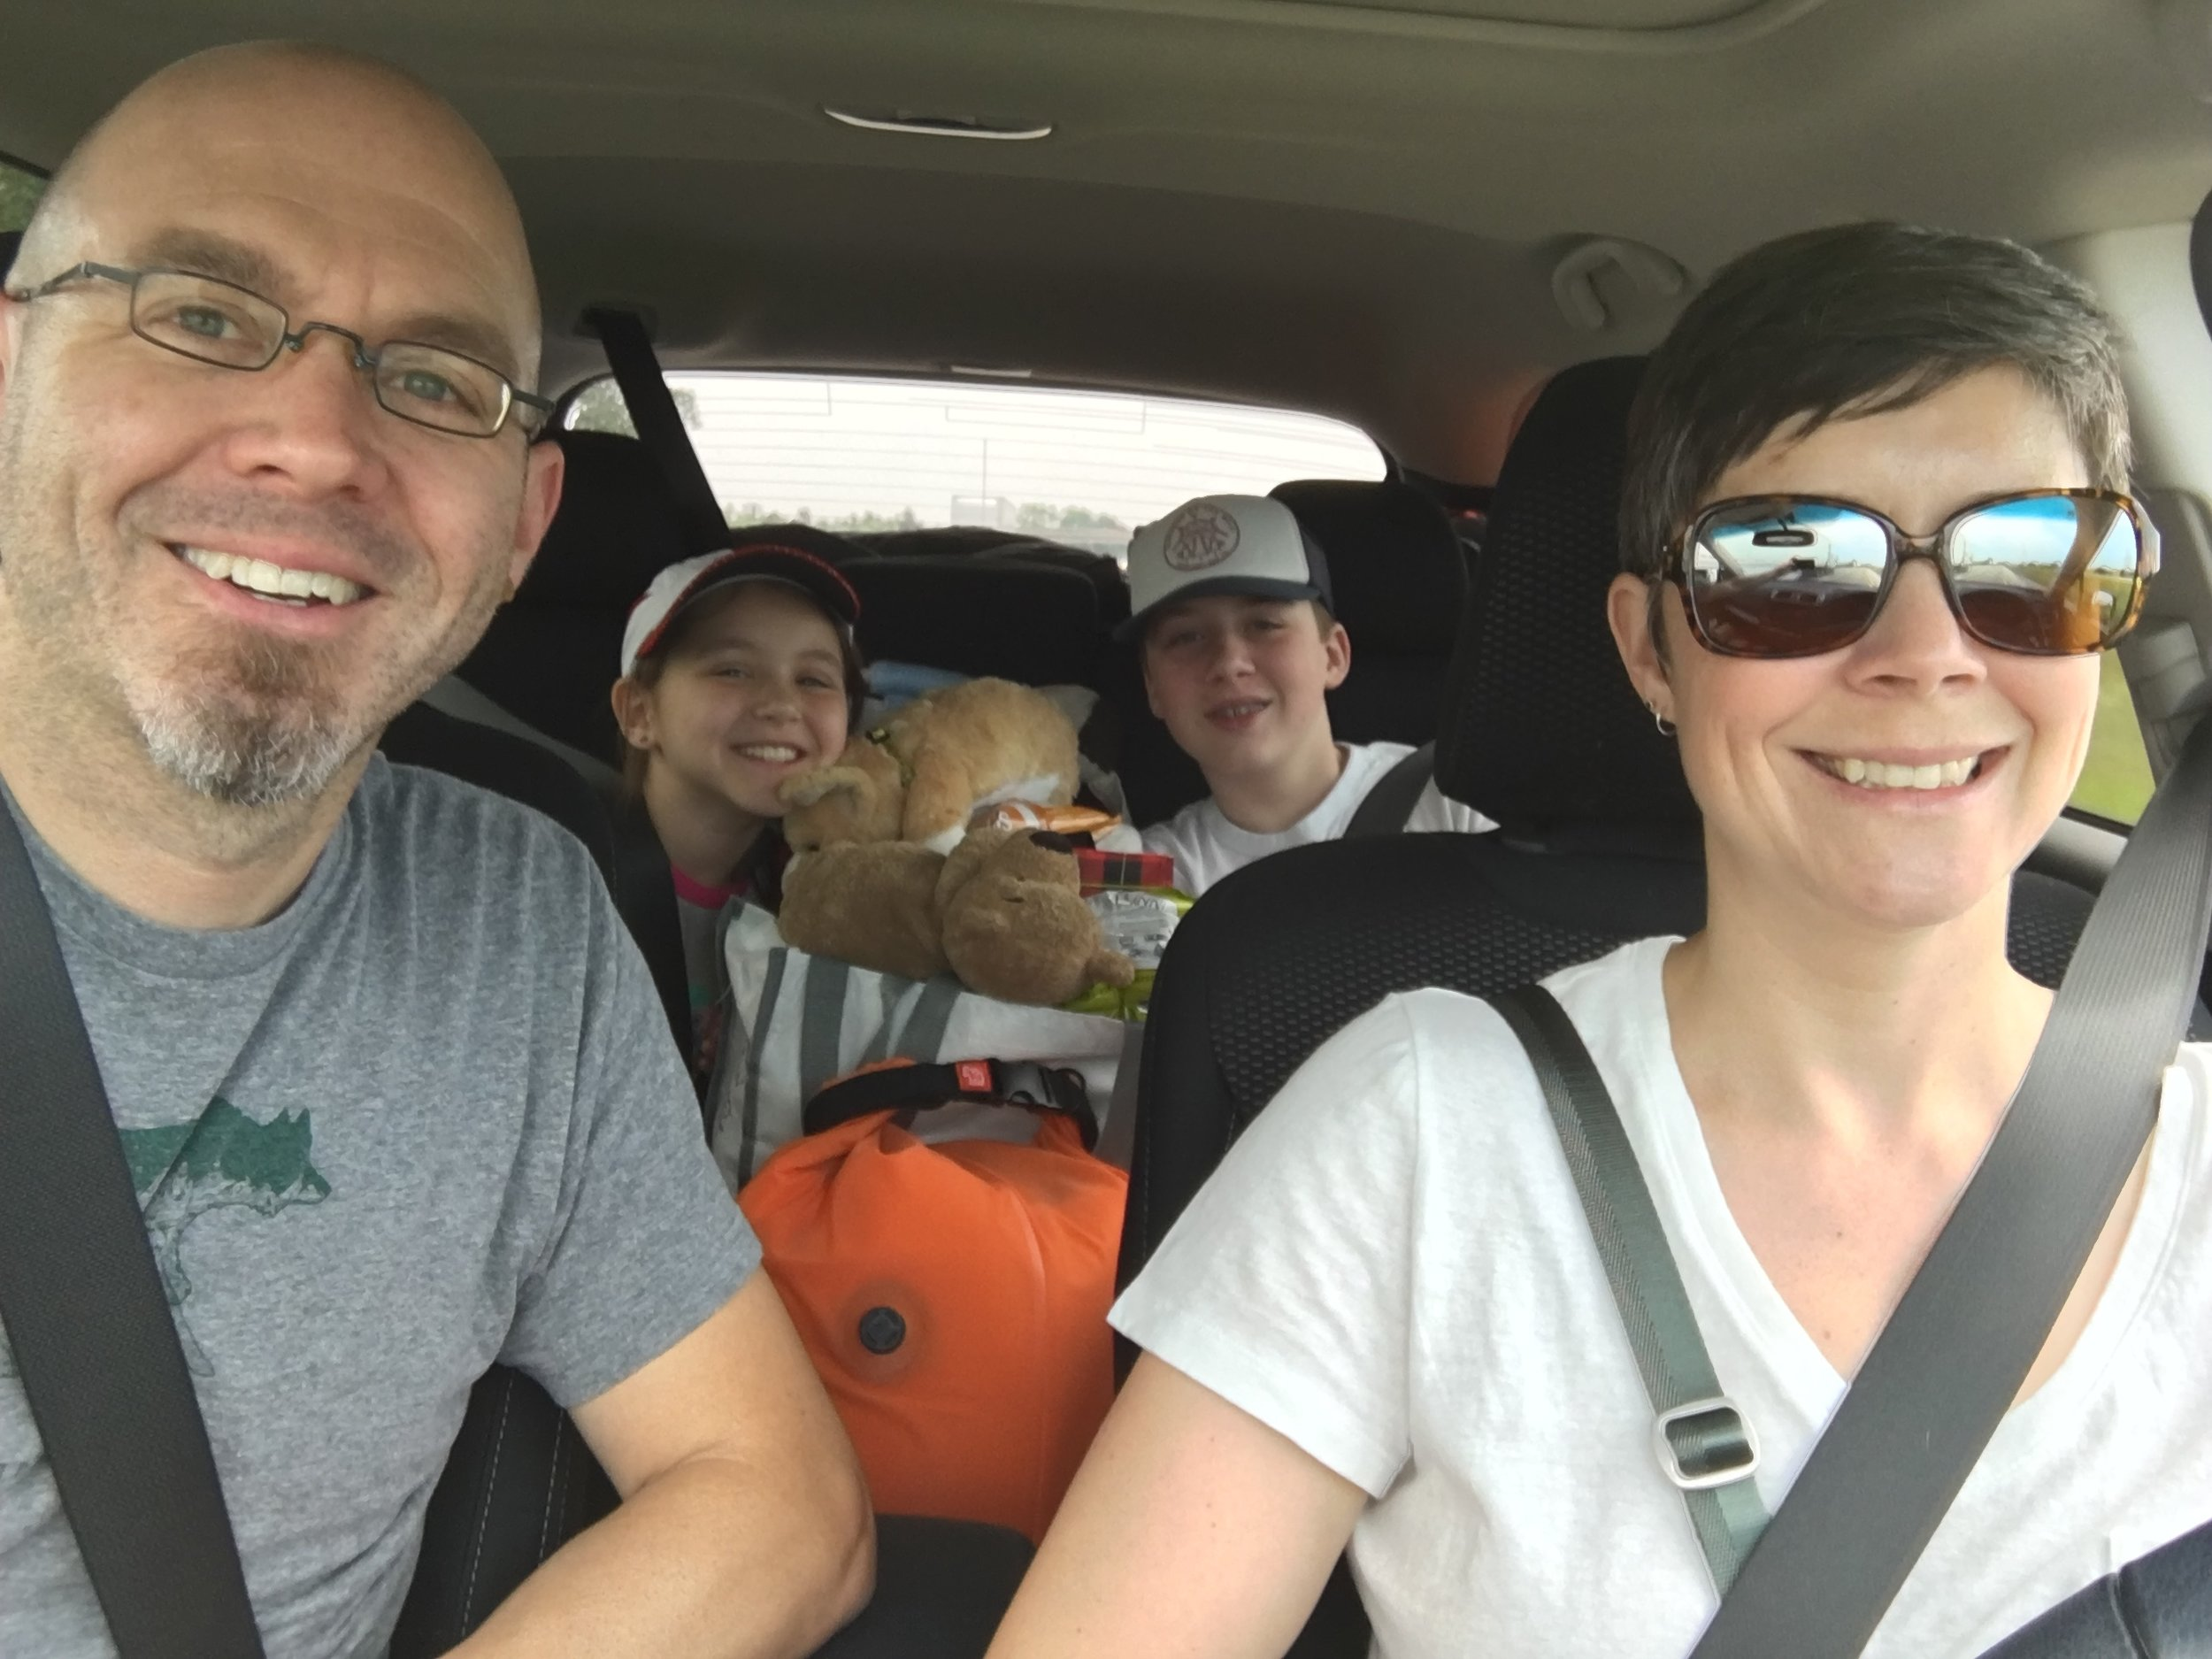 Driving out to Sturgis, SD from Grand Rapids, MI via Madison, WI and Sioux Falls, SD.